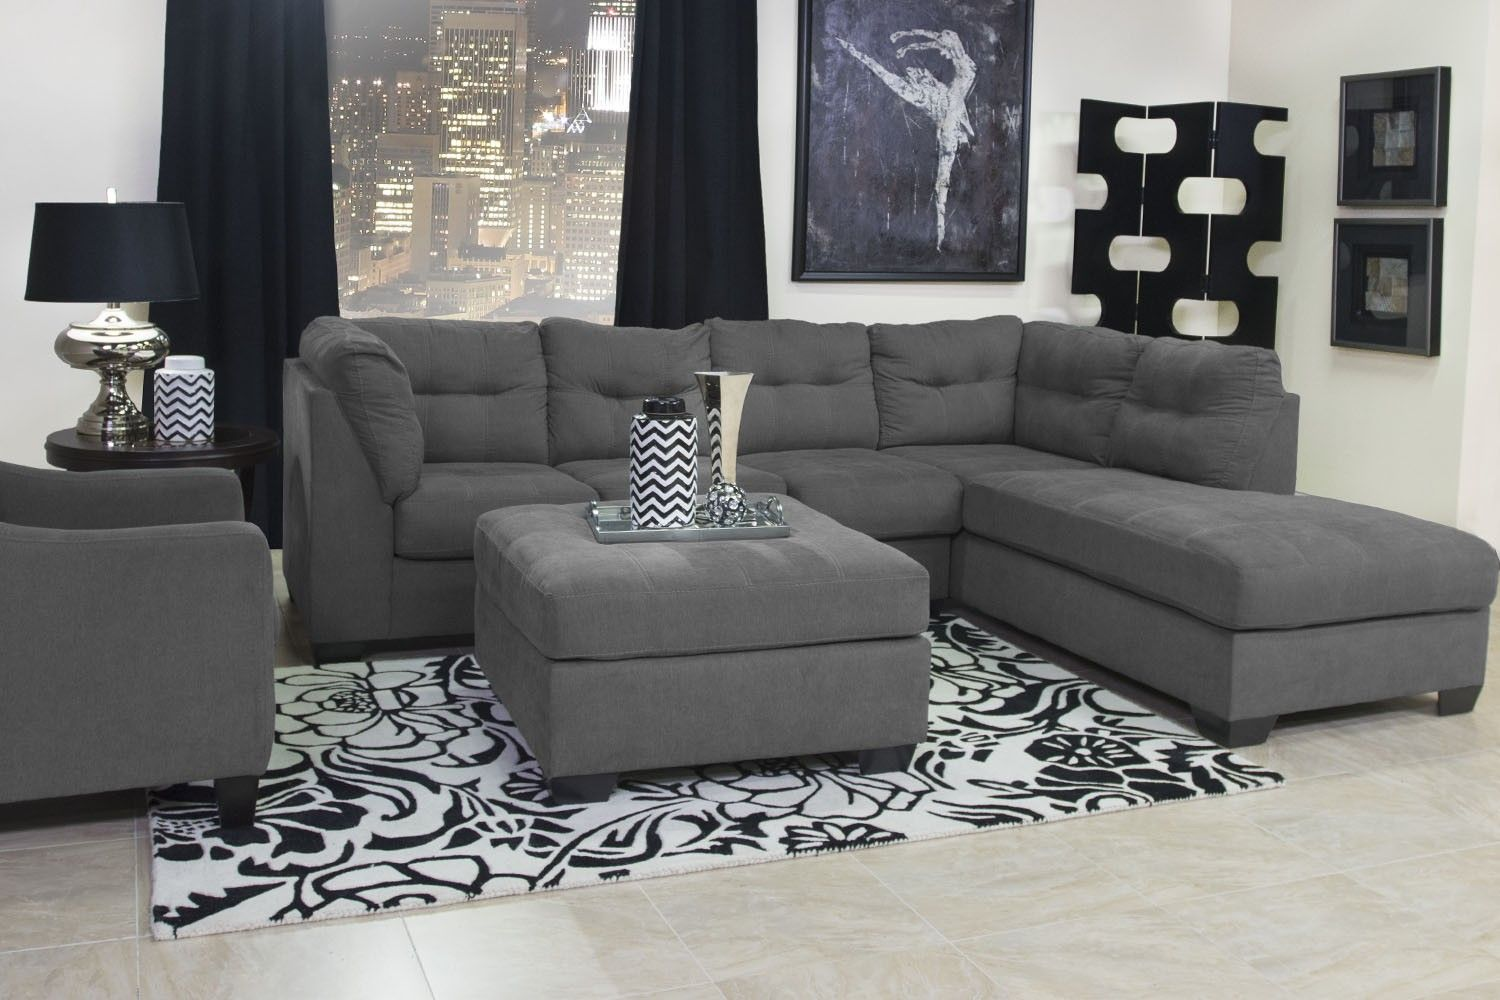 Mor Furniture For Less: The Maier Left Facing Chaise Sectional | Mor  Furniture For